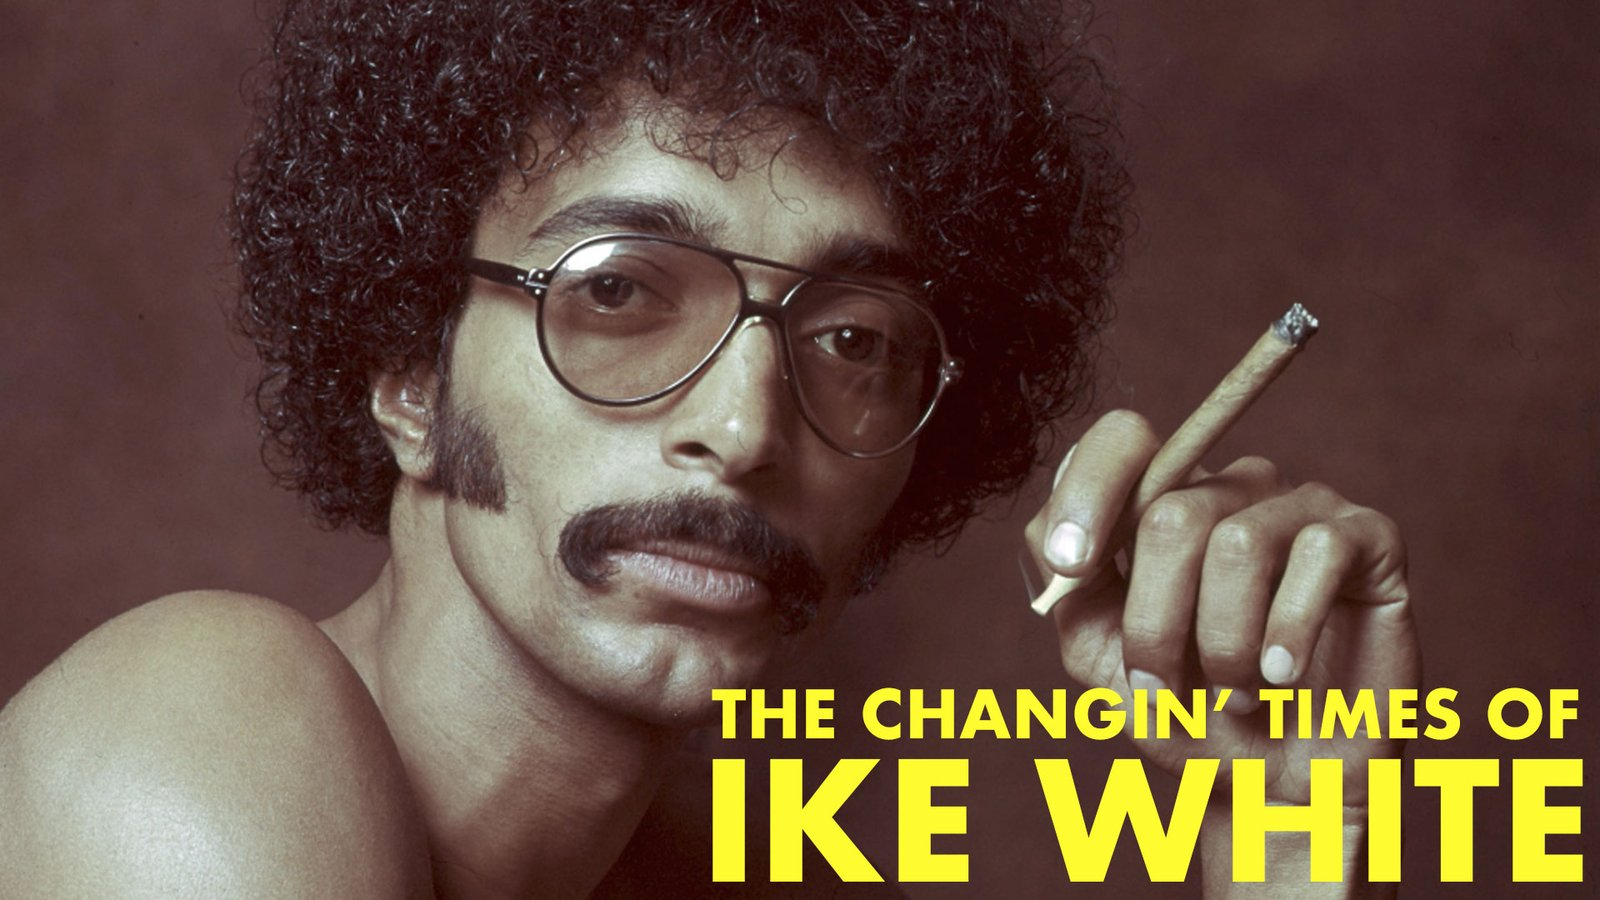 The Changing Times of Ike White